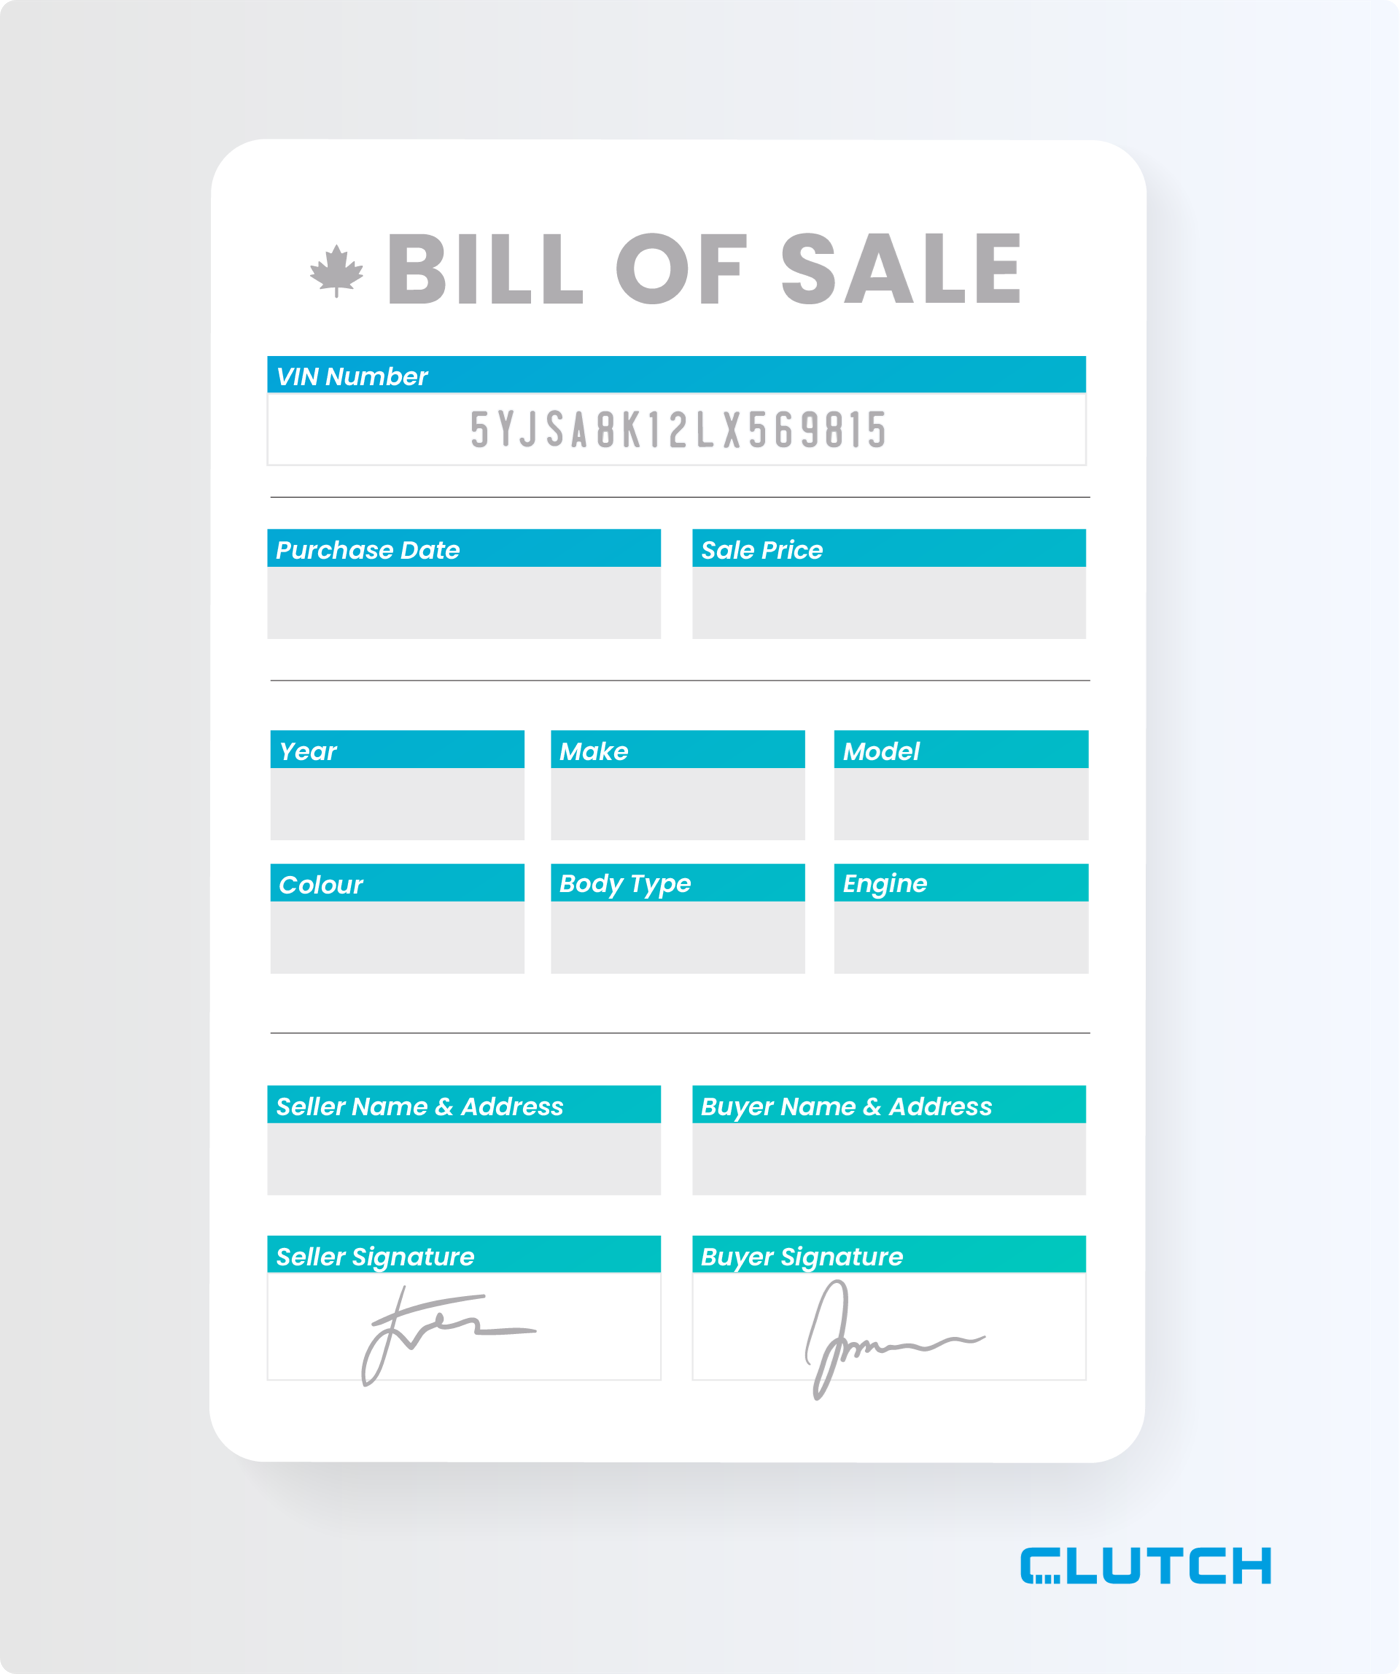 Bill of sale in Ontario